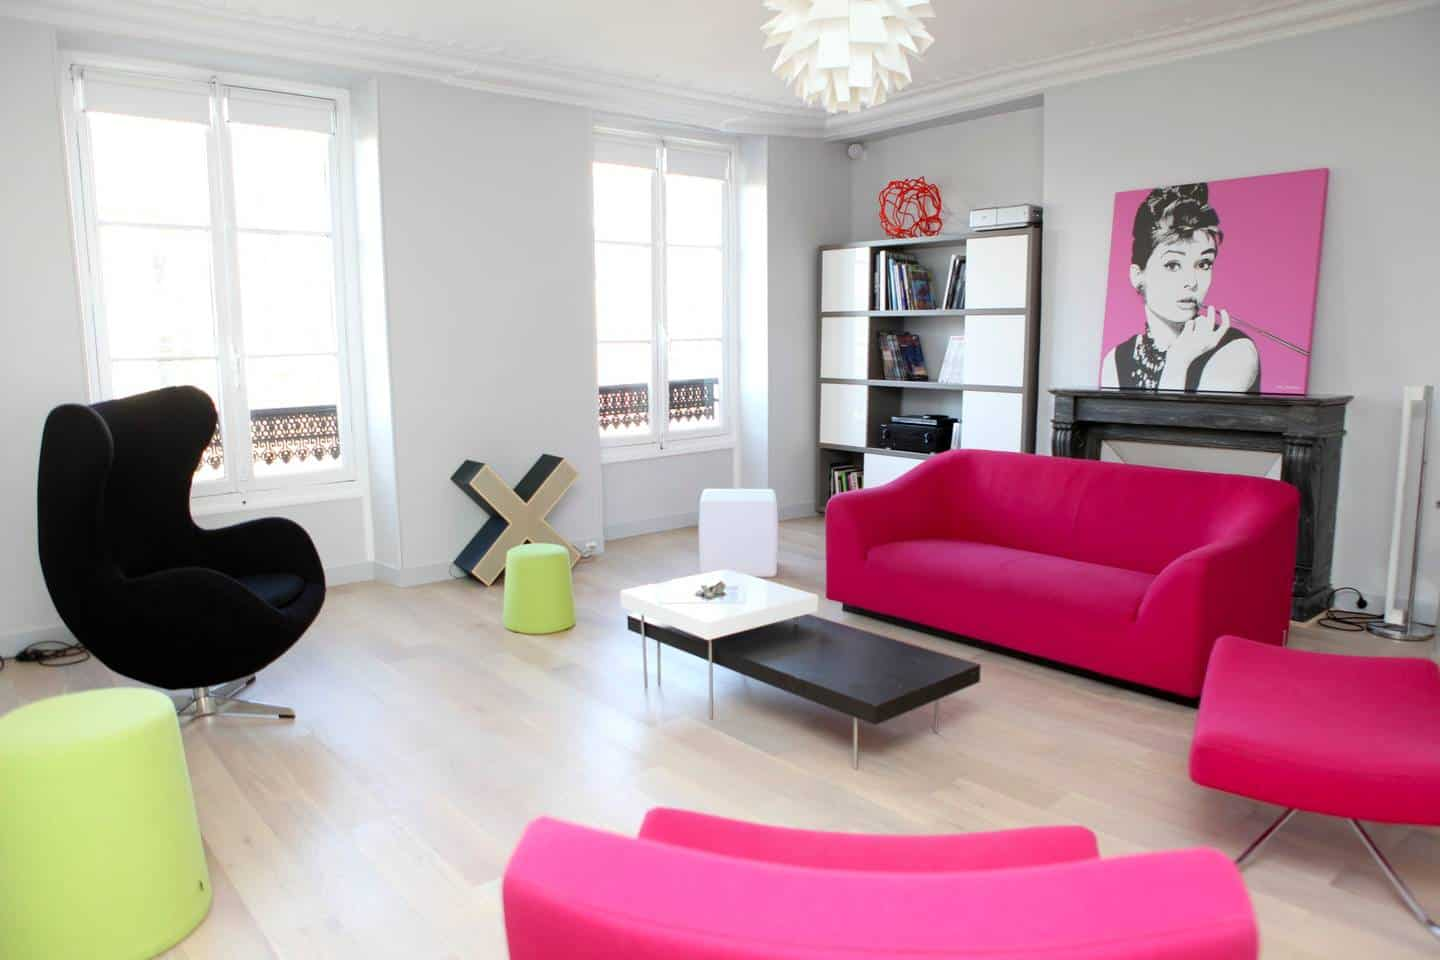 Wow! This Airbnb Paris listing near Bastille is dreamy. You have to see the pictures!